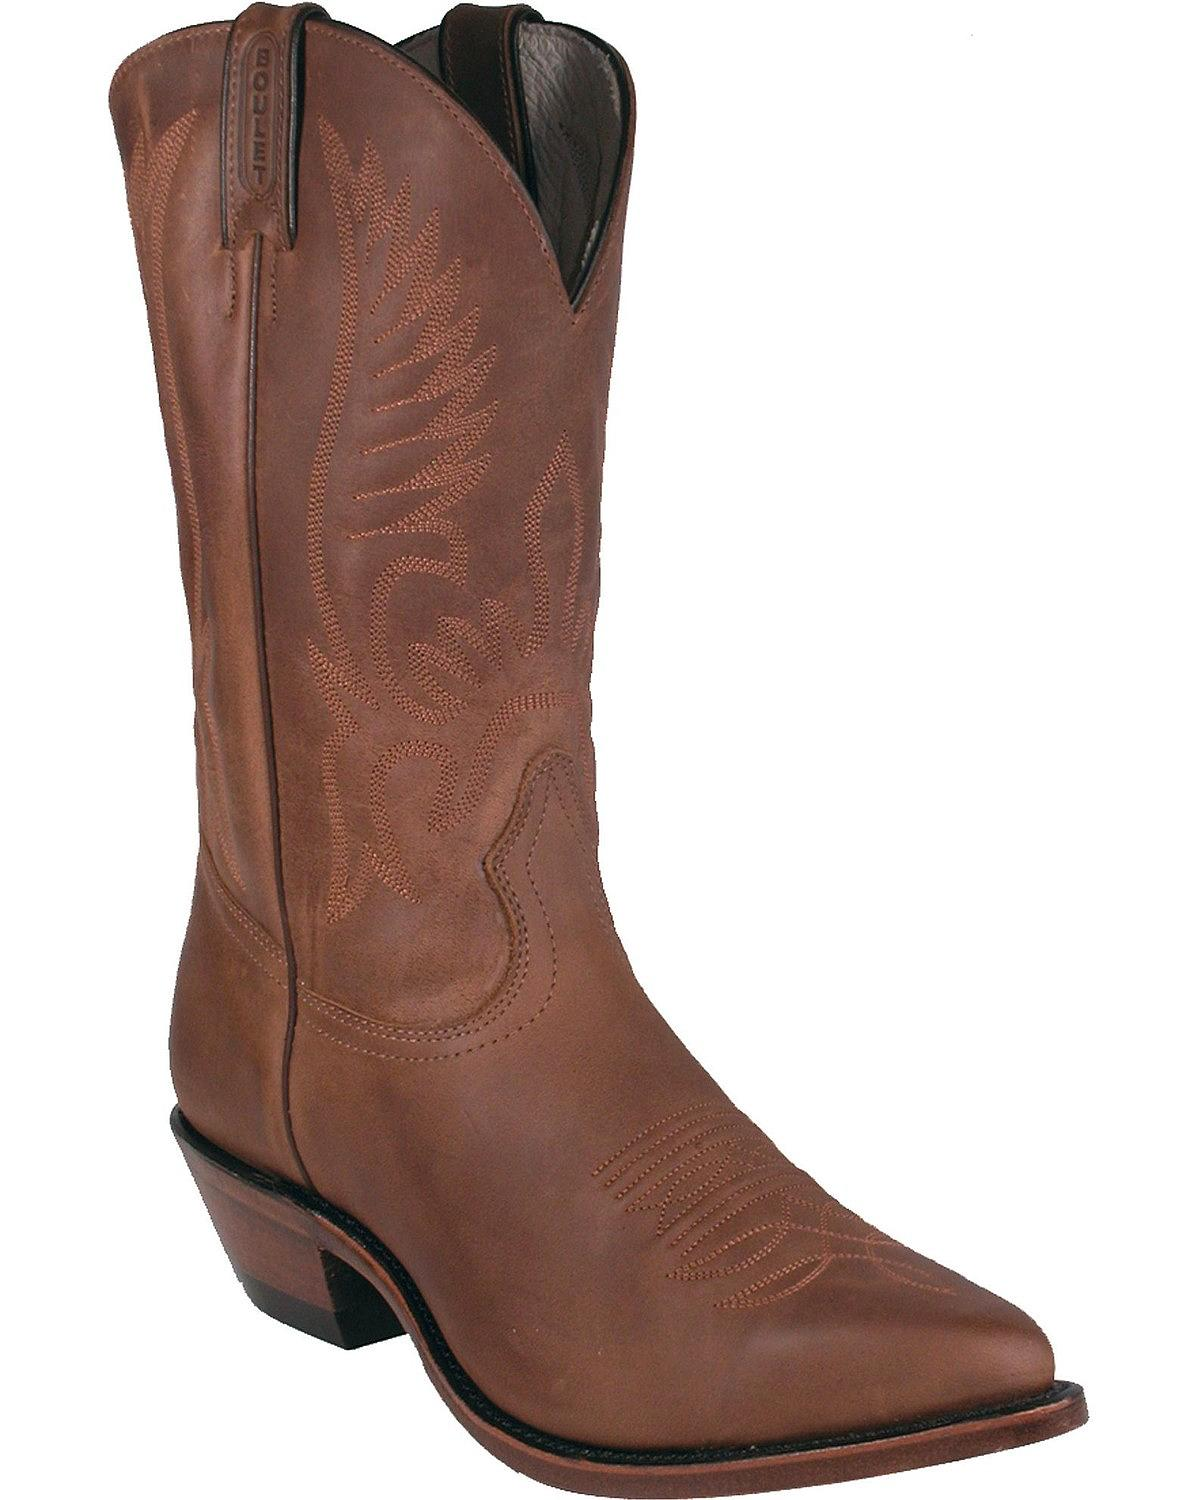 Boulet Men's Fancy Stitched Cowboy Boot Pointed Toe